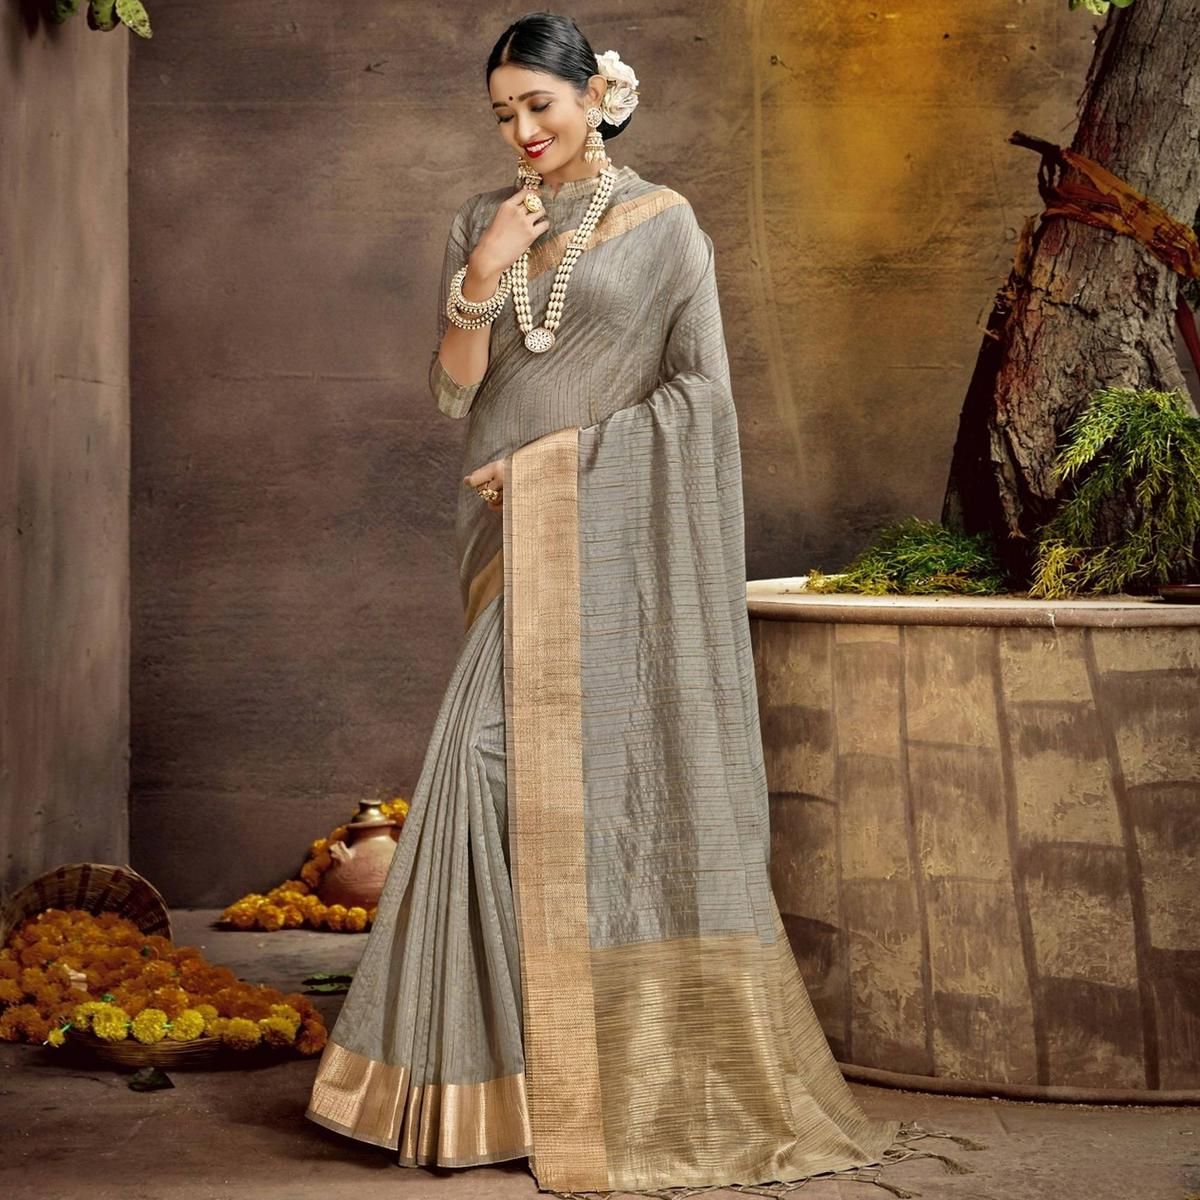 Triveni Grey Colored Cotton Party Wear Solid Saree With Blouse Piece